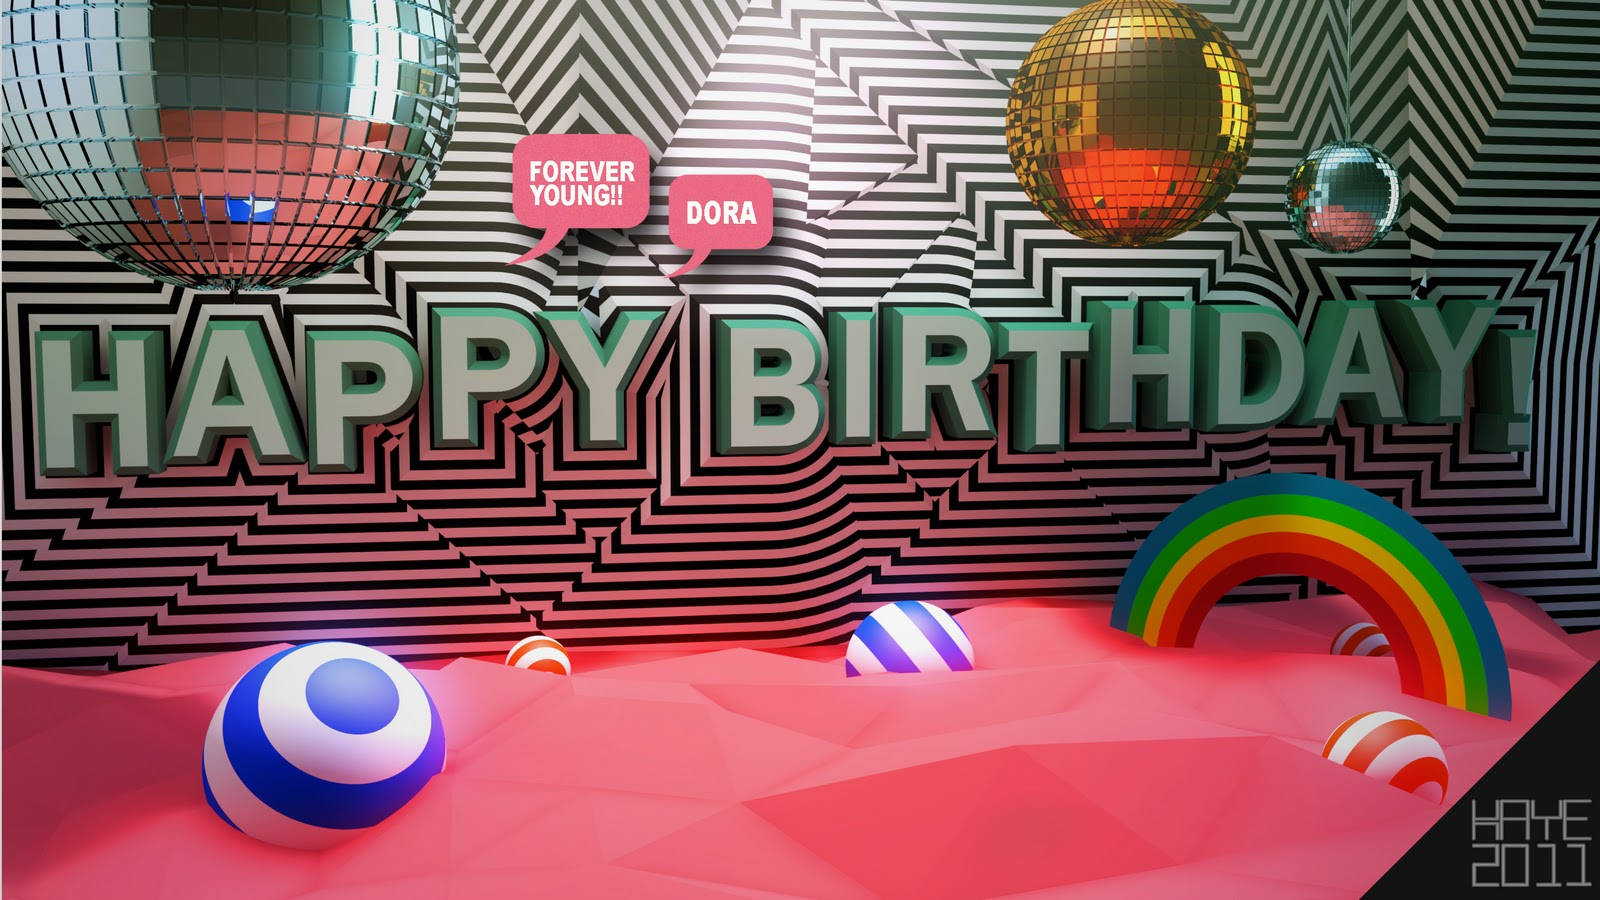 3d poster design software - I Made This Poster With Cinema 4d For My Firend Dora S Birthday Party I Also Want To Use This Style In My Project In This Scene I Built A Room For Lighting